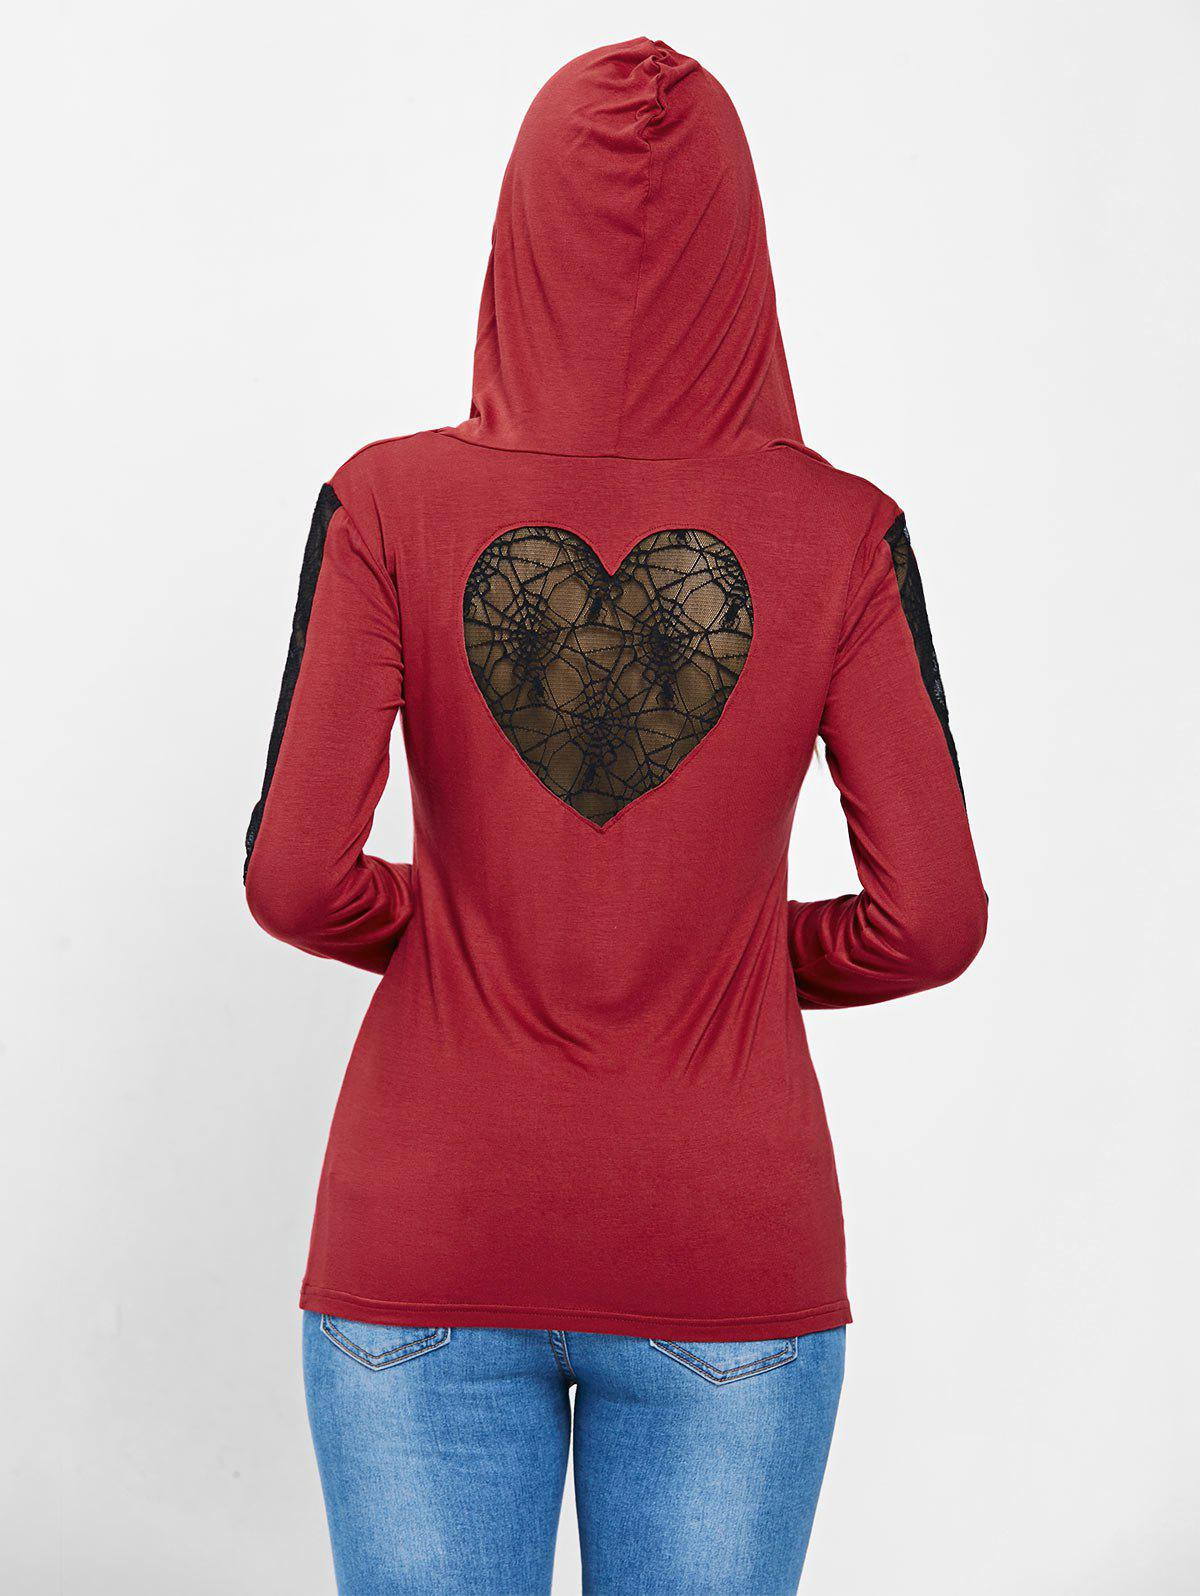 Spider Lace Long Sleeve Halloween Hooded T-shirt - RED XL